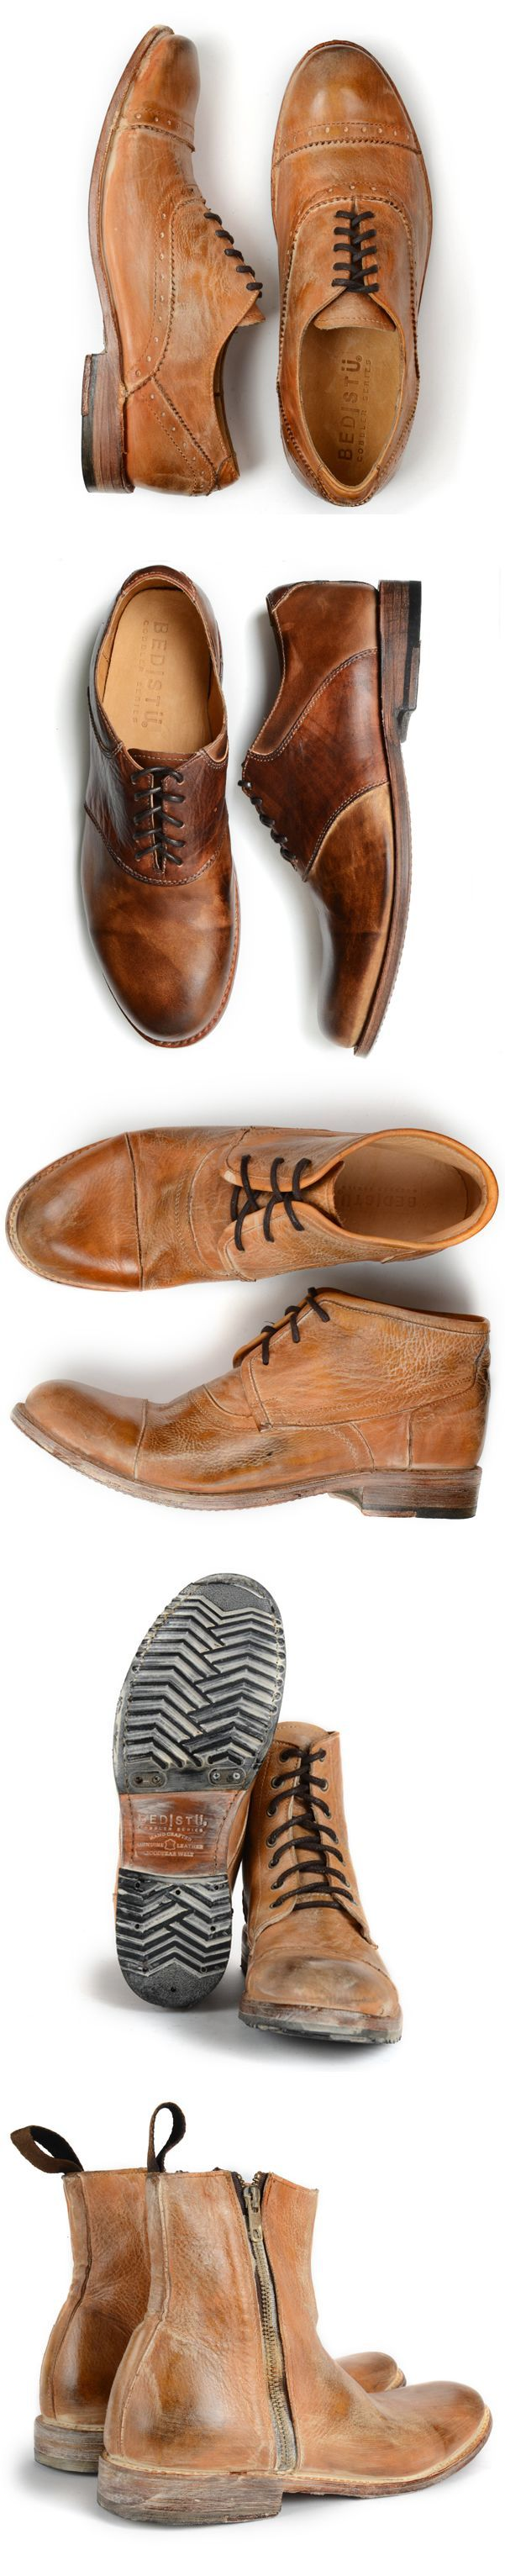 Mens oxfords, chukkas, and boots in Tan Rustic finish.